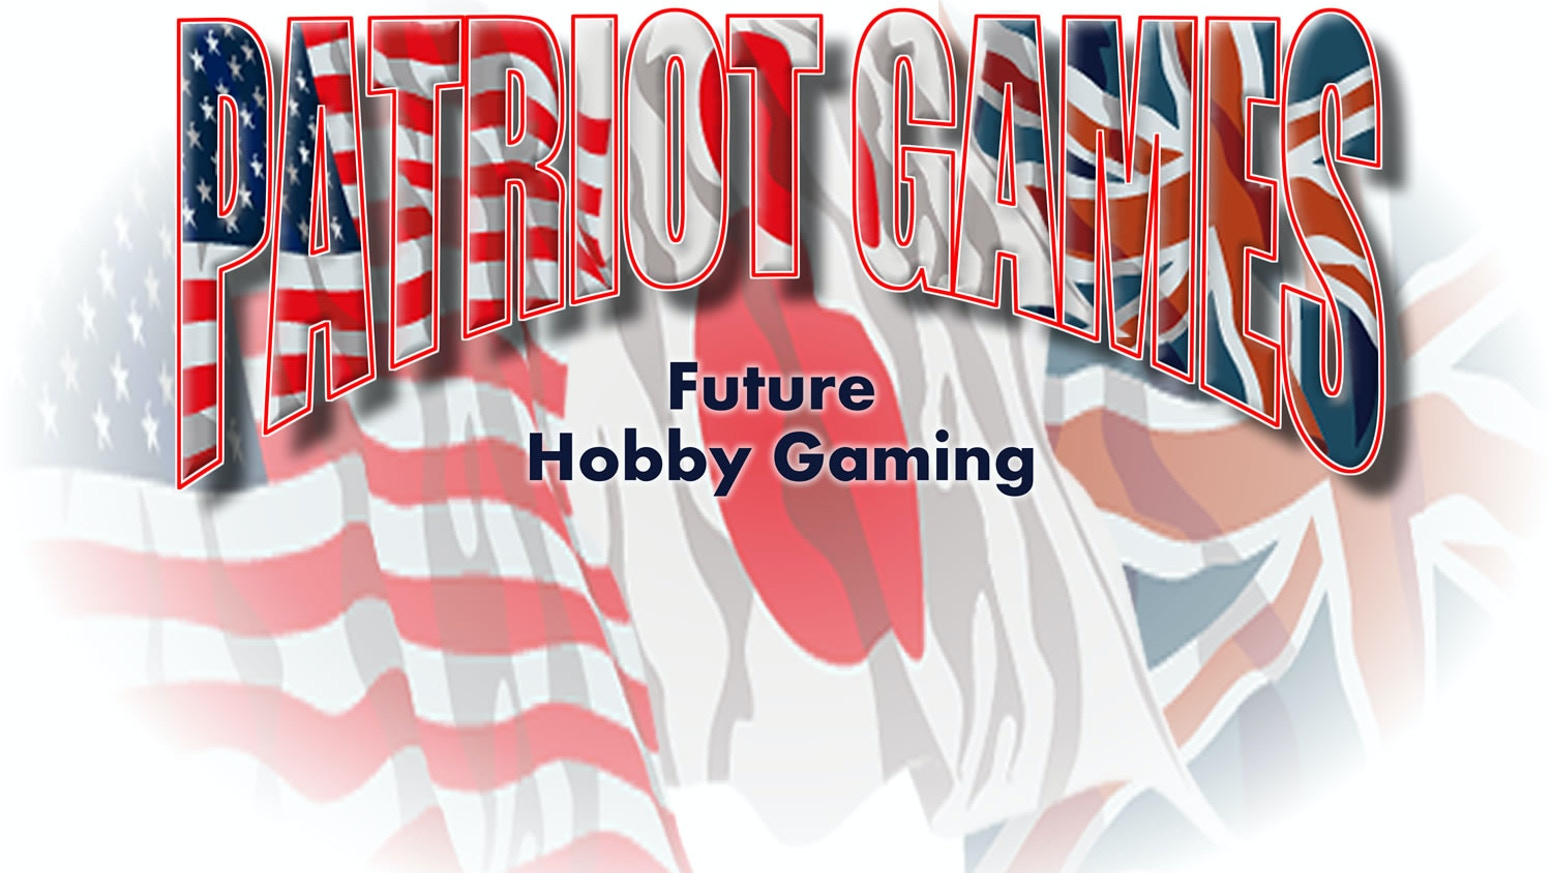 Developing a hobby games store to meet the changing demands of the gamer.